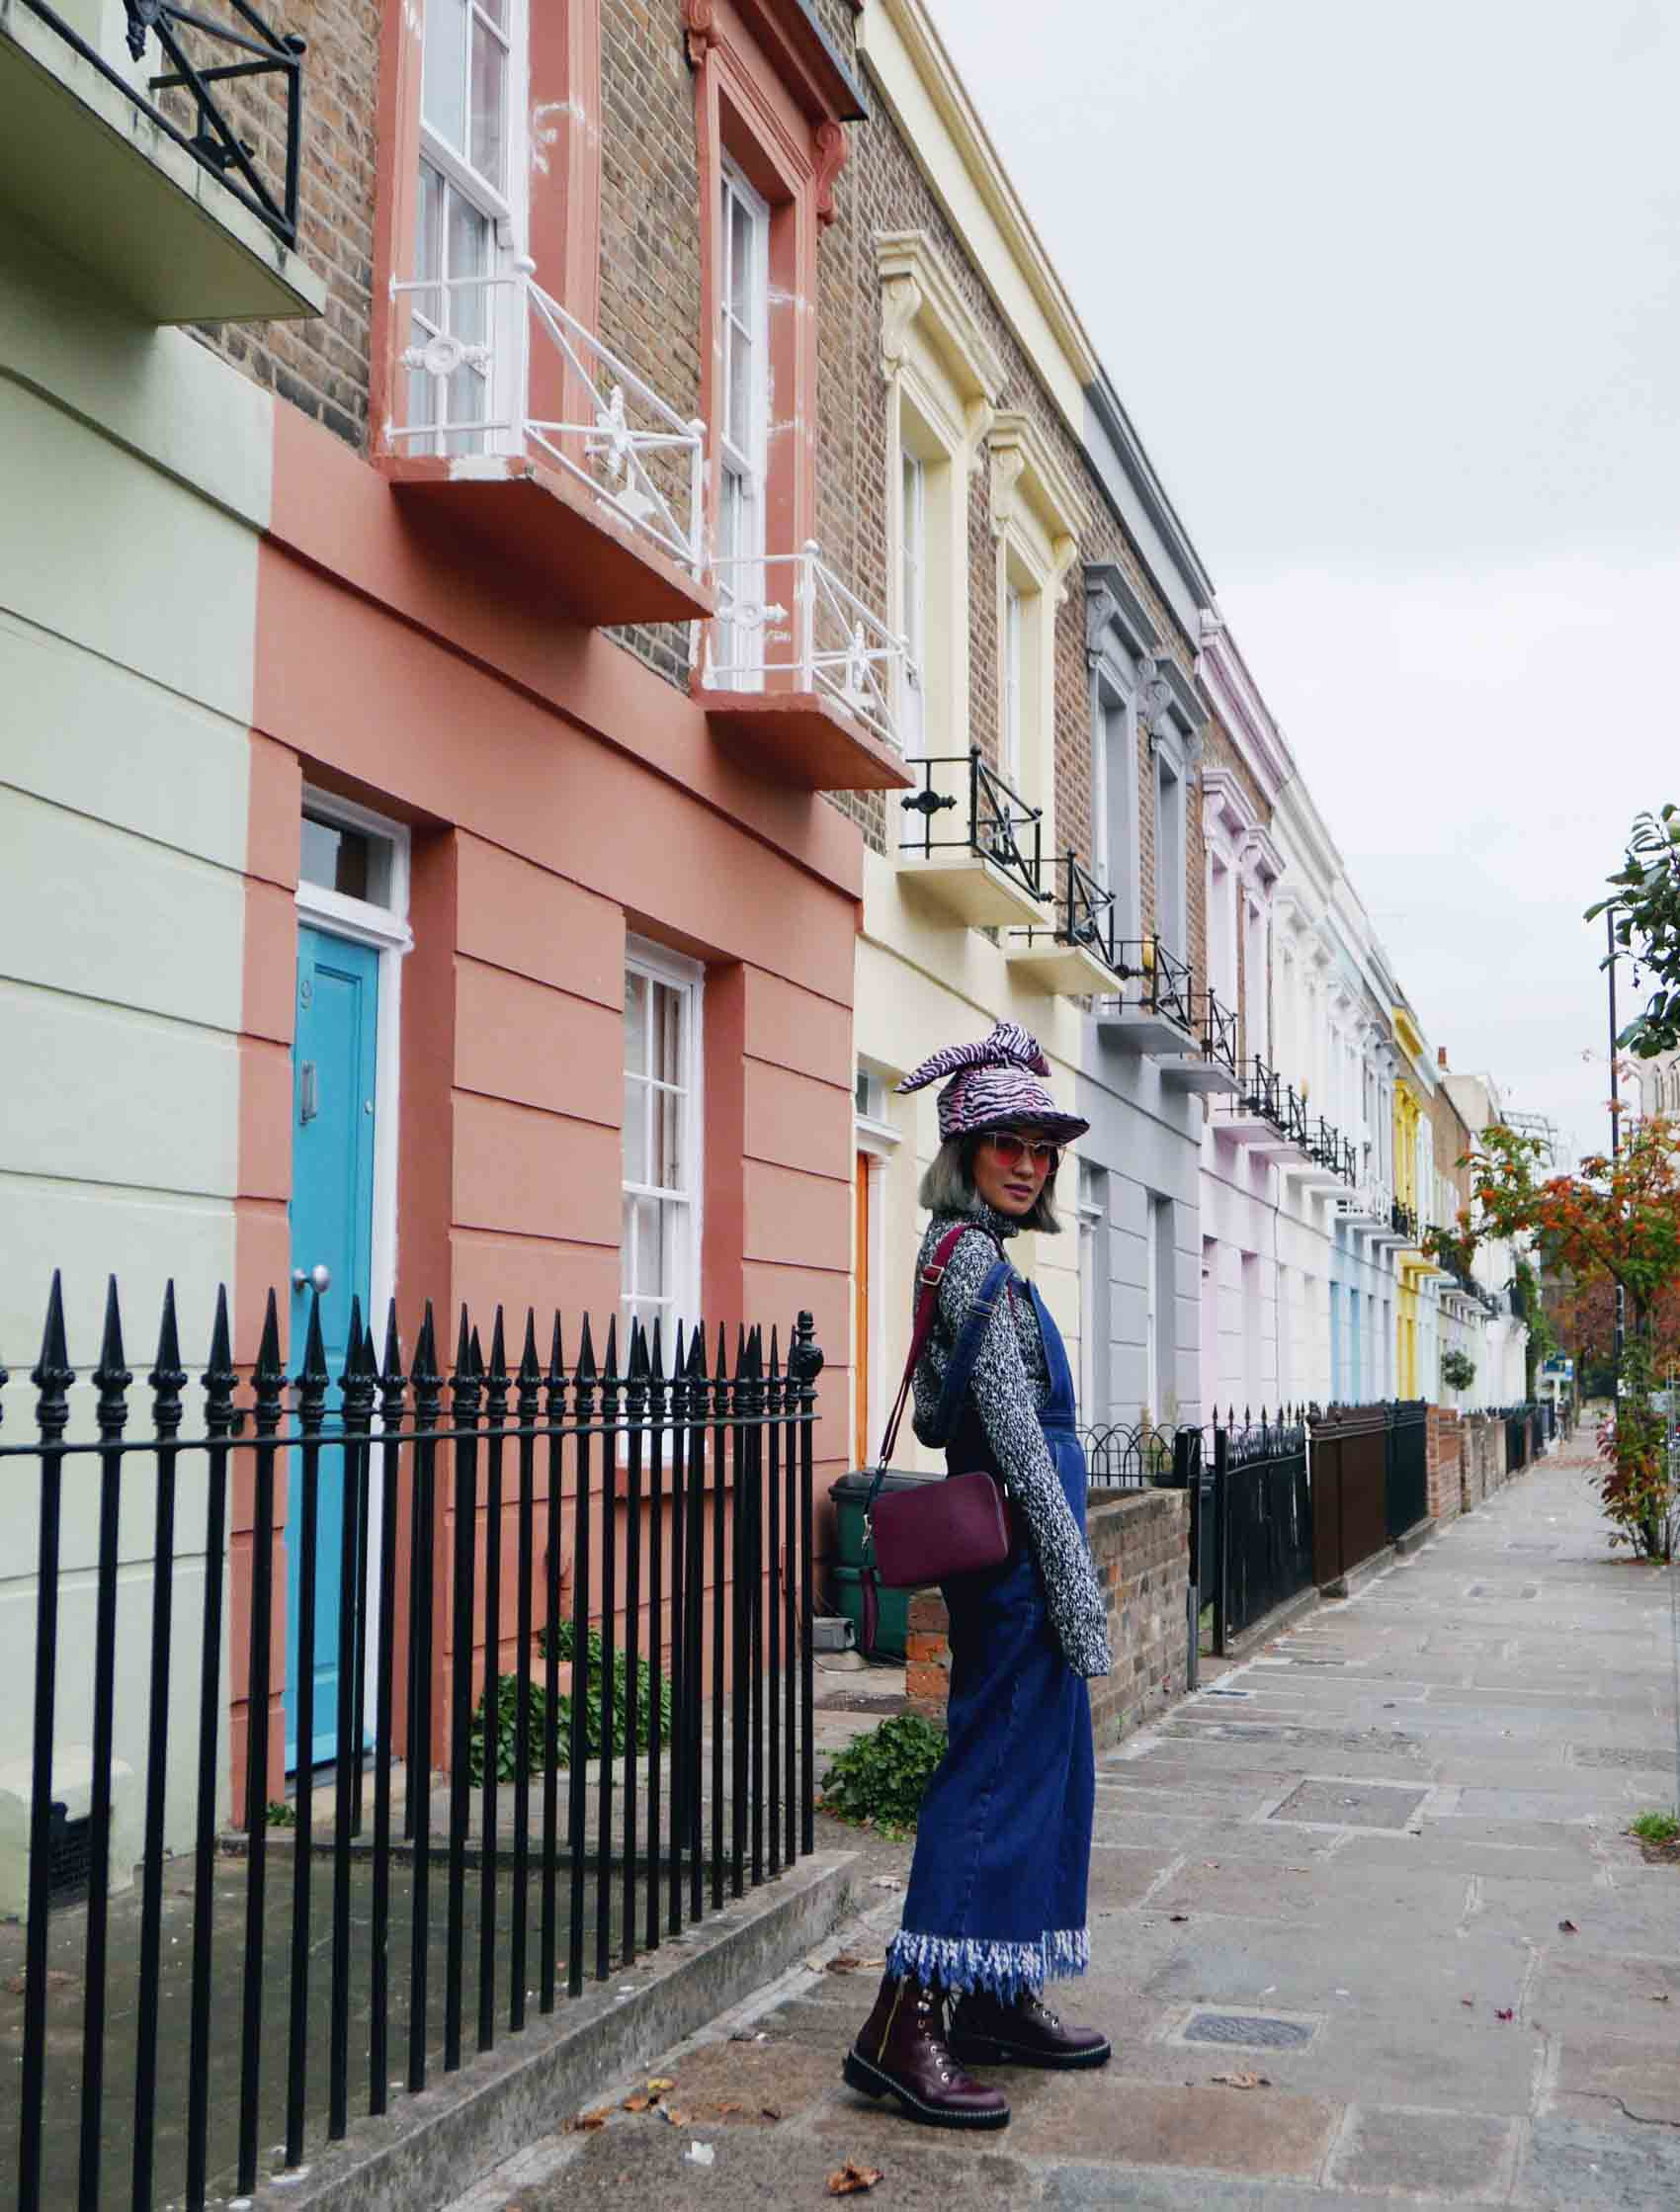 Things to do in London 26